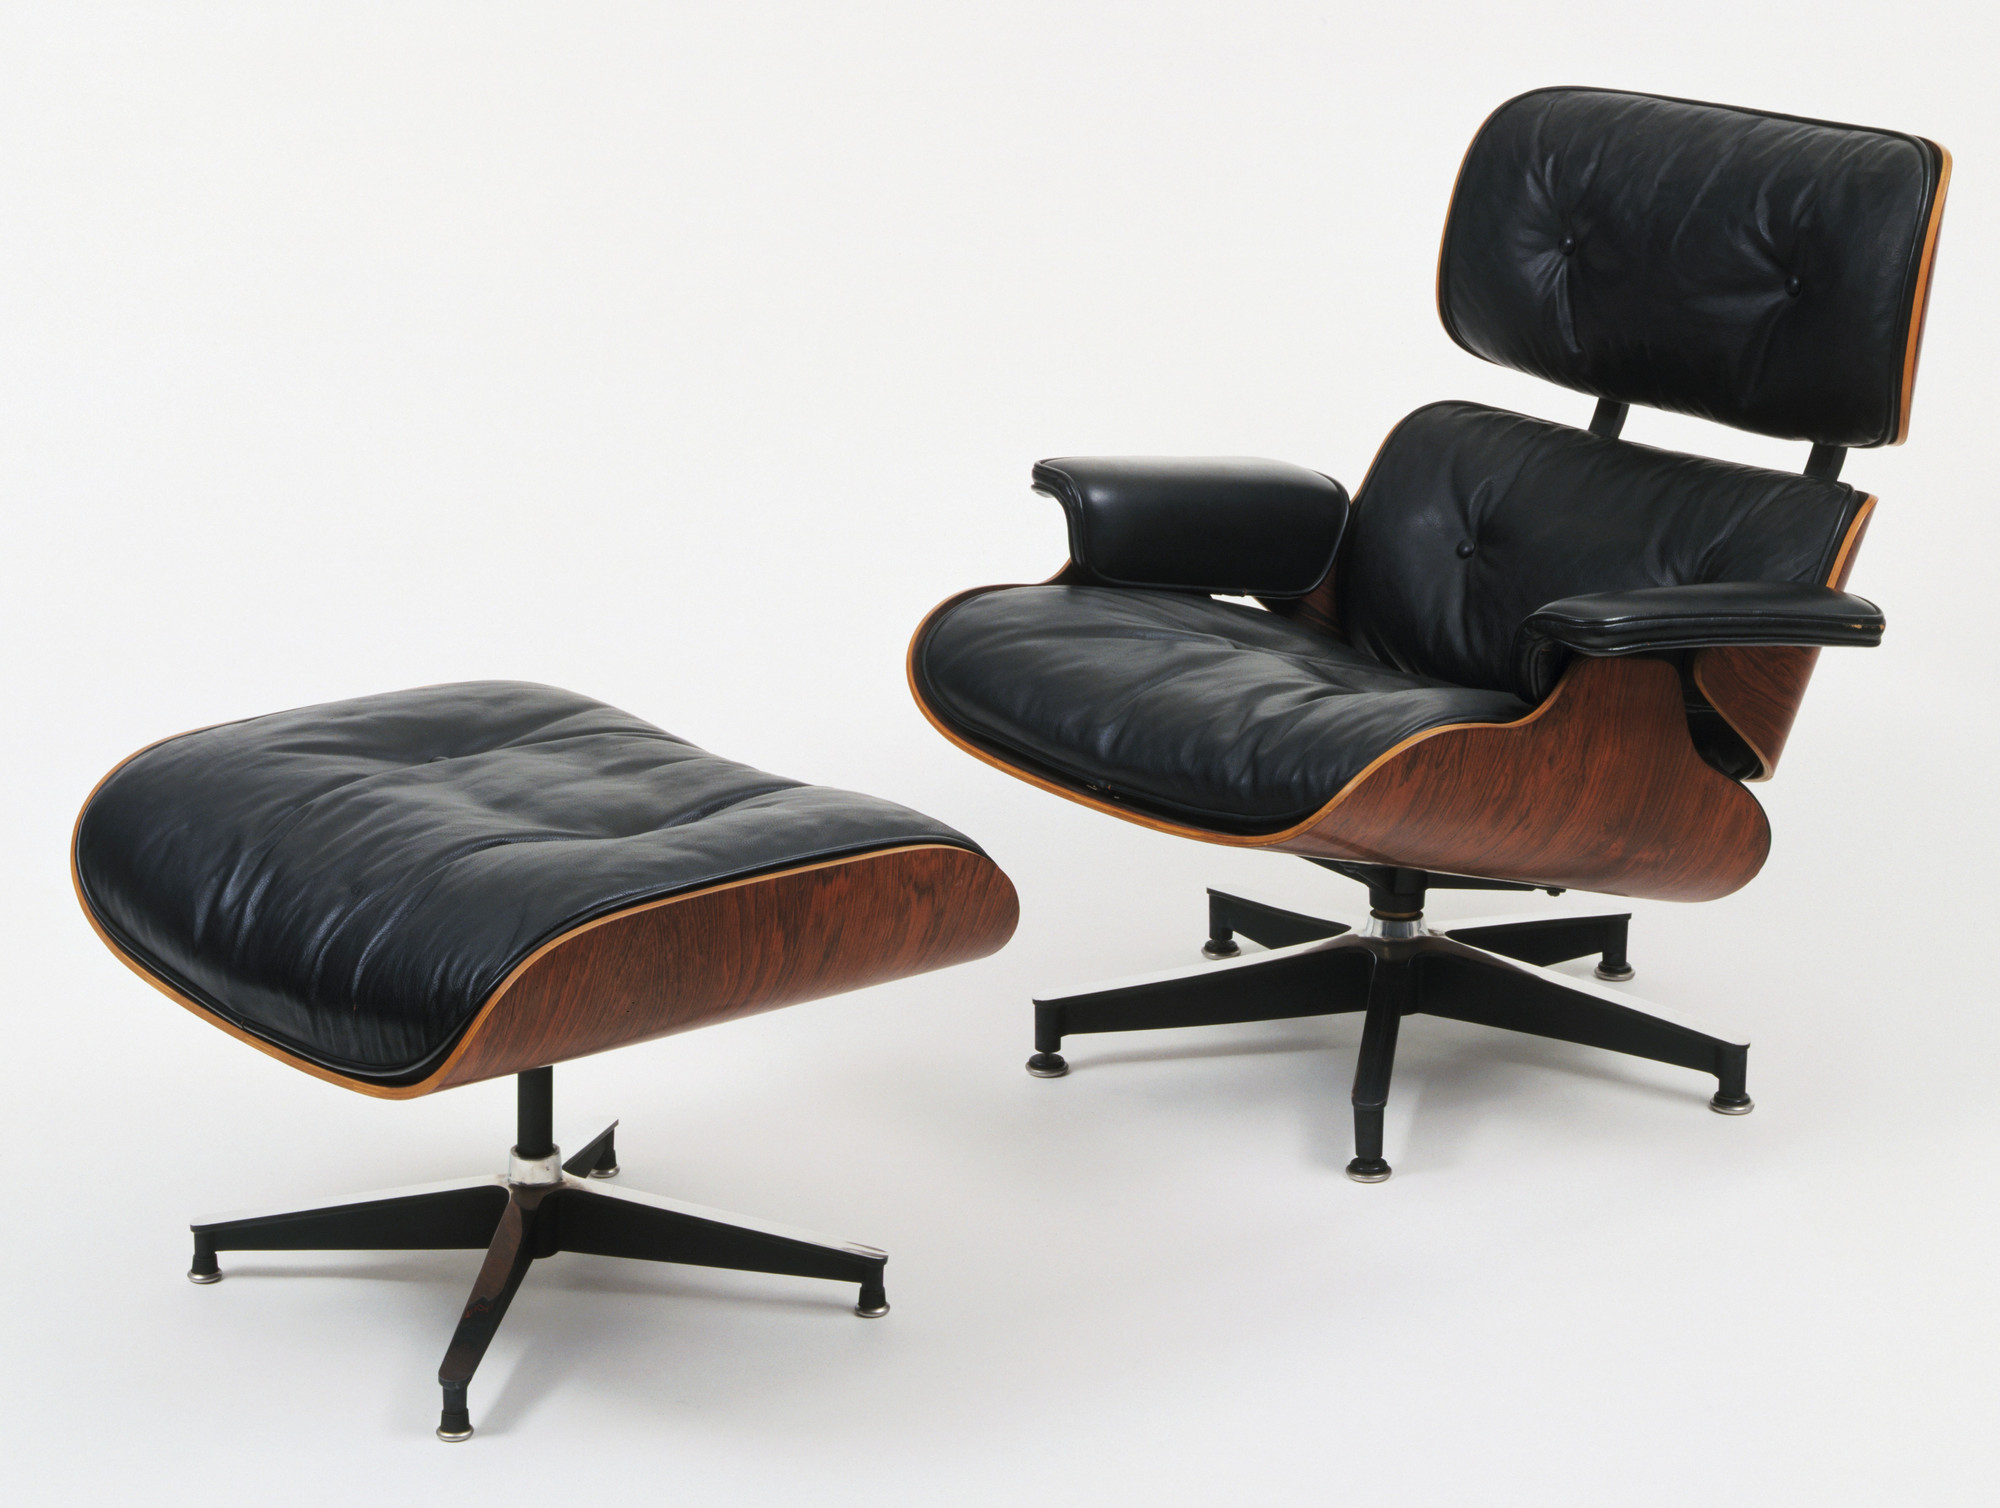 Surprising Charles Eames Ray Eames Lounge Chair And Ottoman 1956 Moma Theyellowbook Wood Chair Design Ideas Theyellowbookinfo